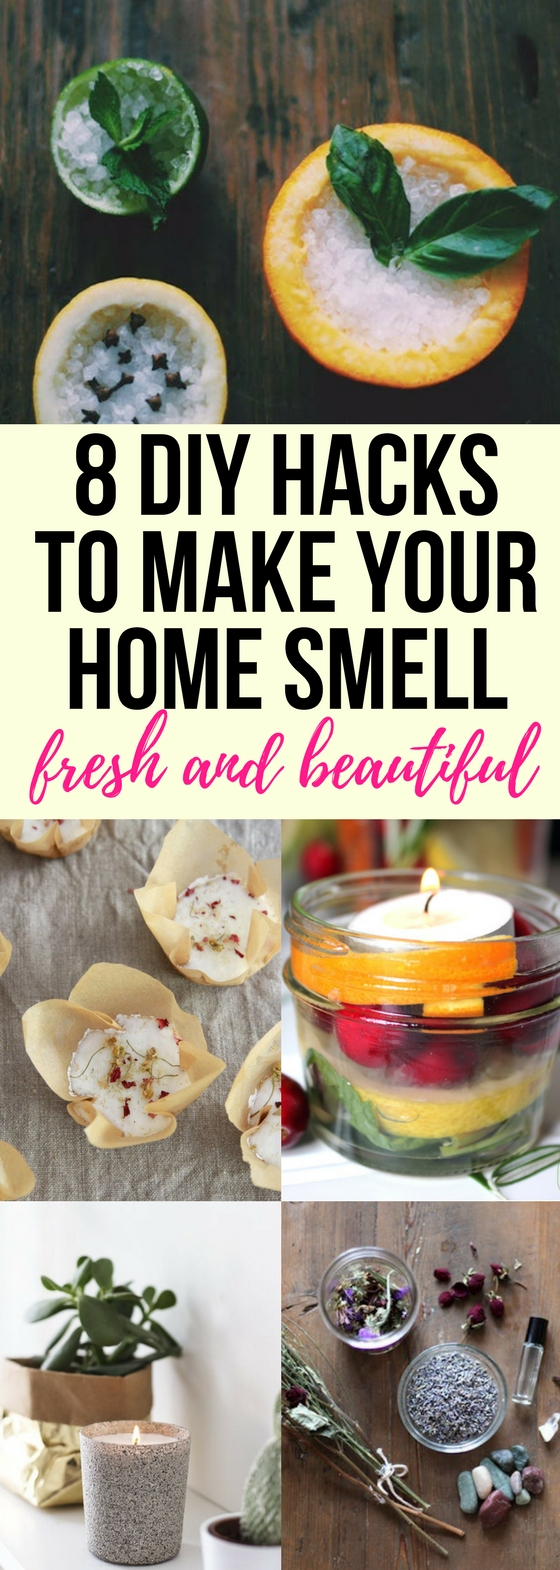 8 Diy Hacks To Make Your Home Smell Fresh And Beautiful